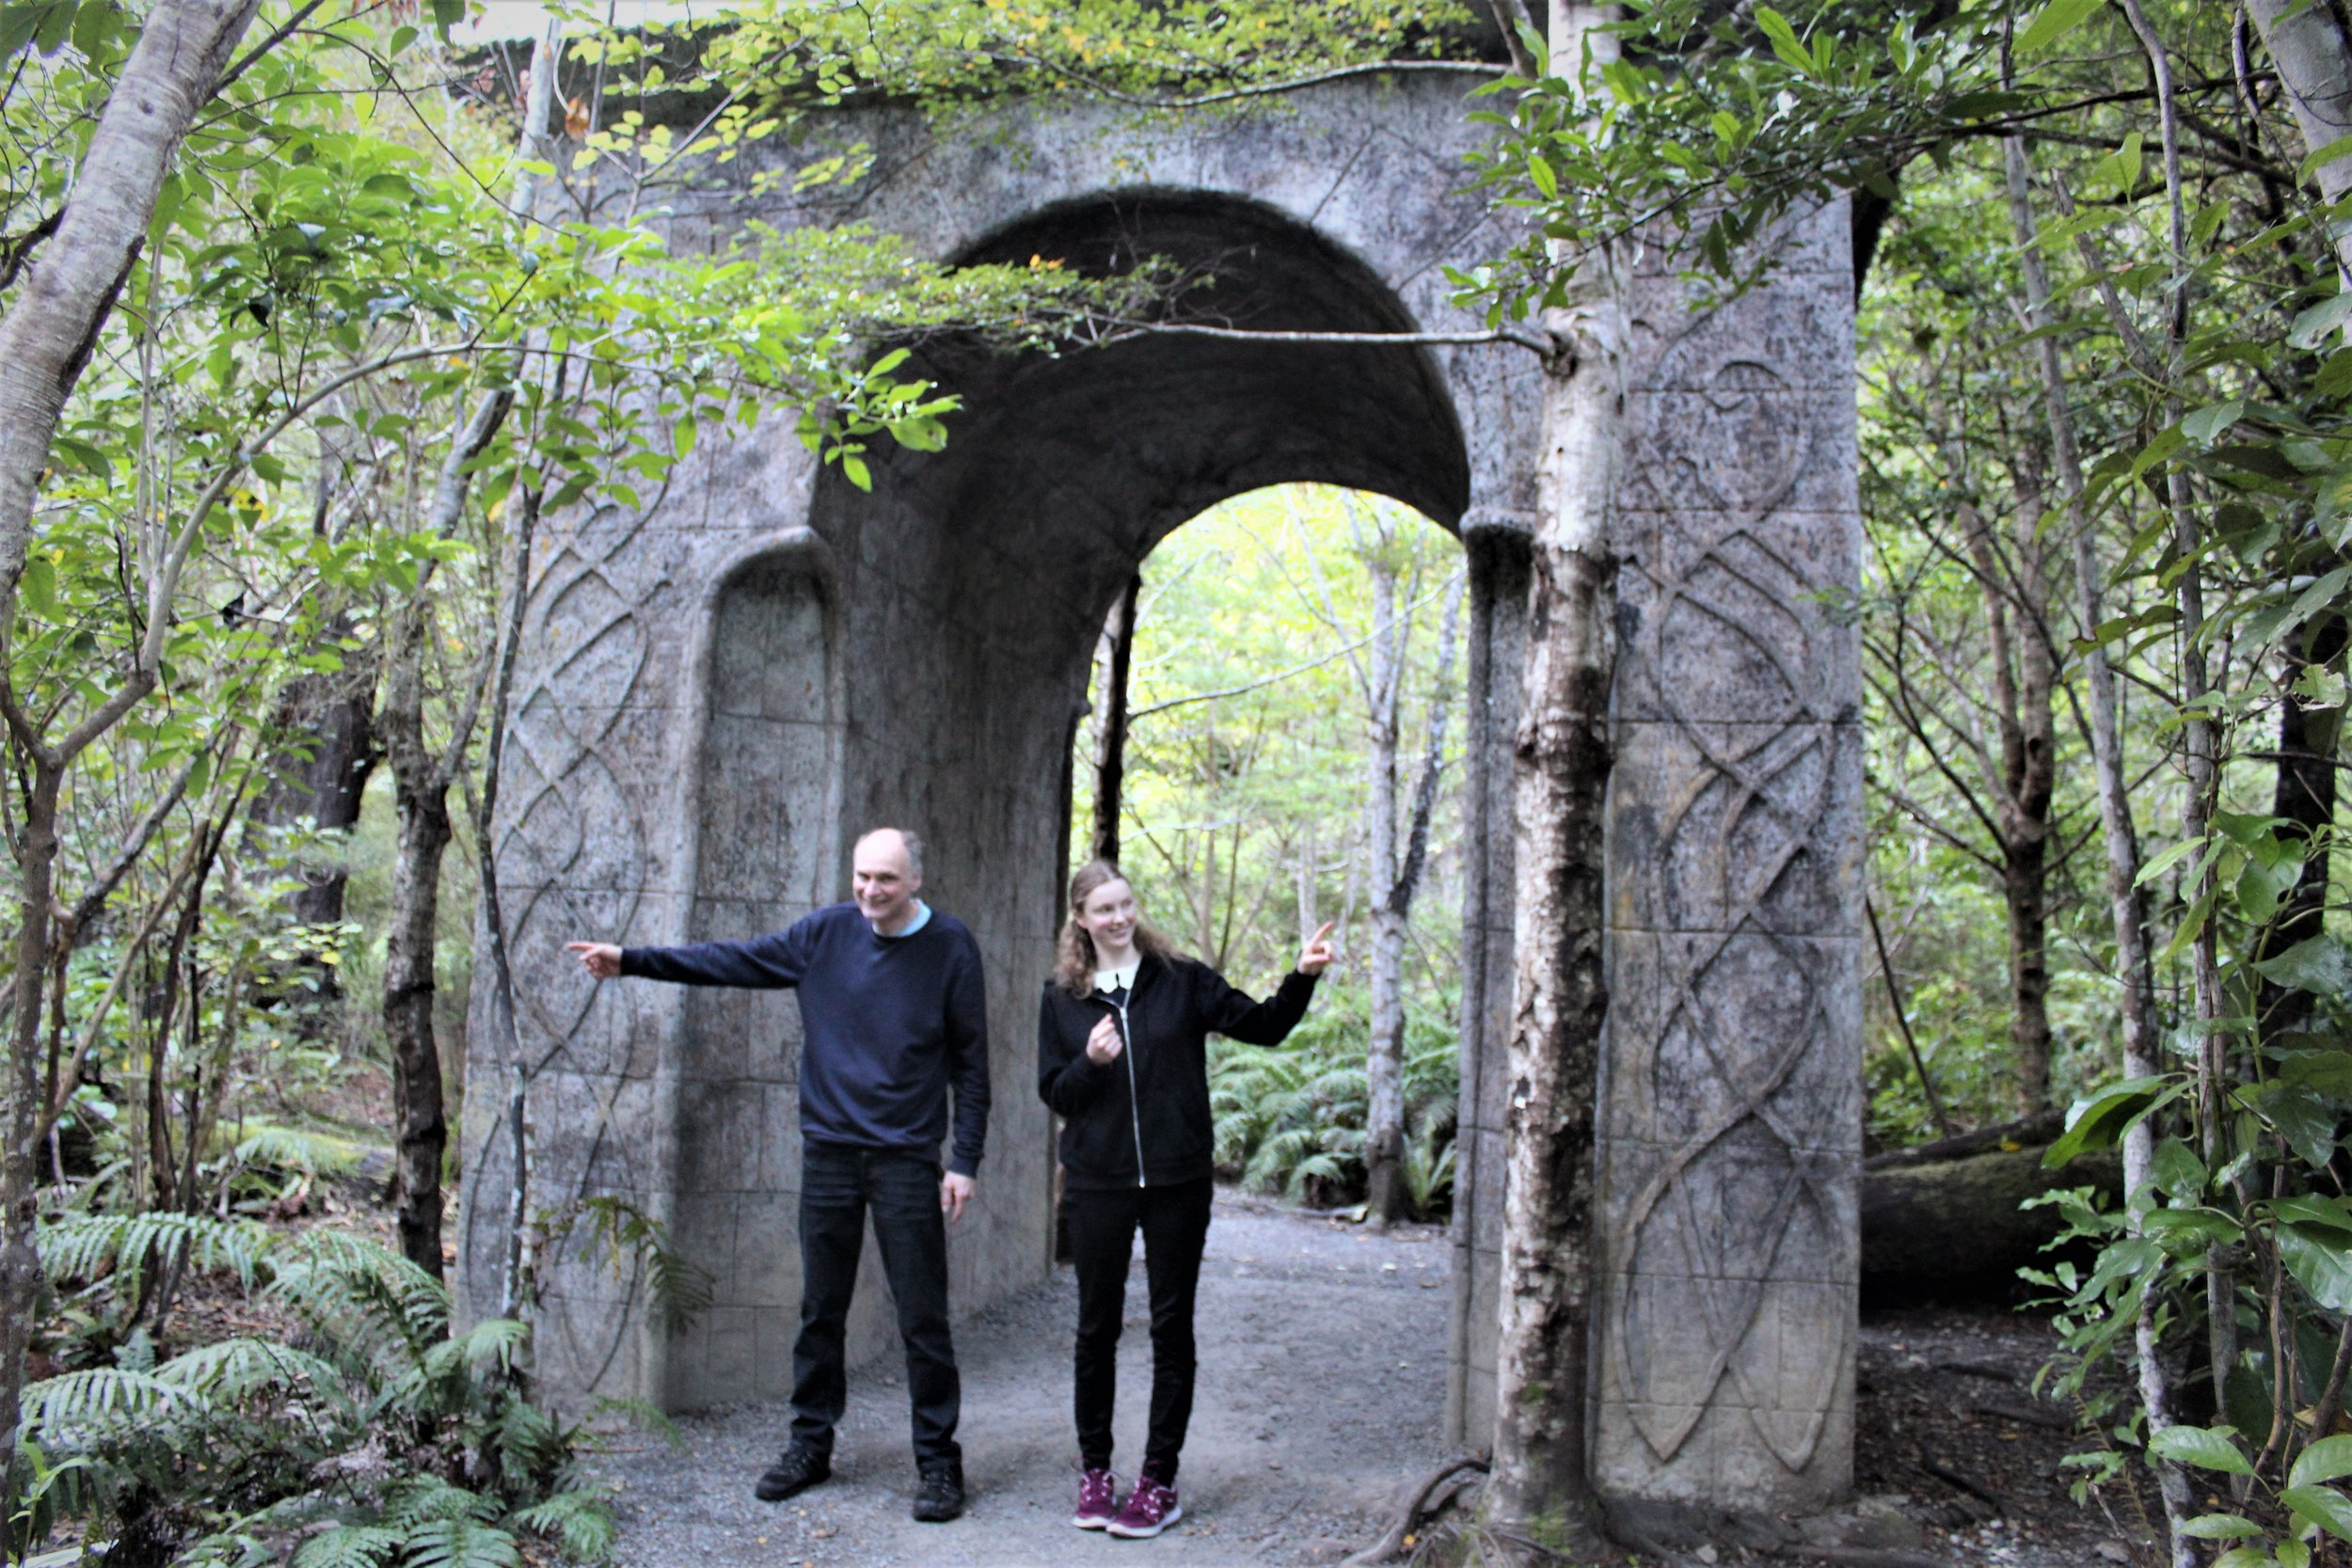 Archway Rivendell Henry and Freya pointing.jpg